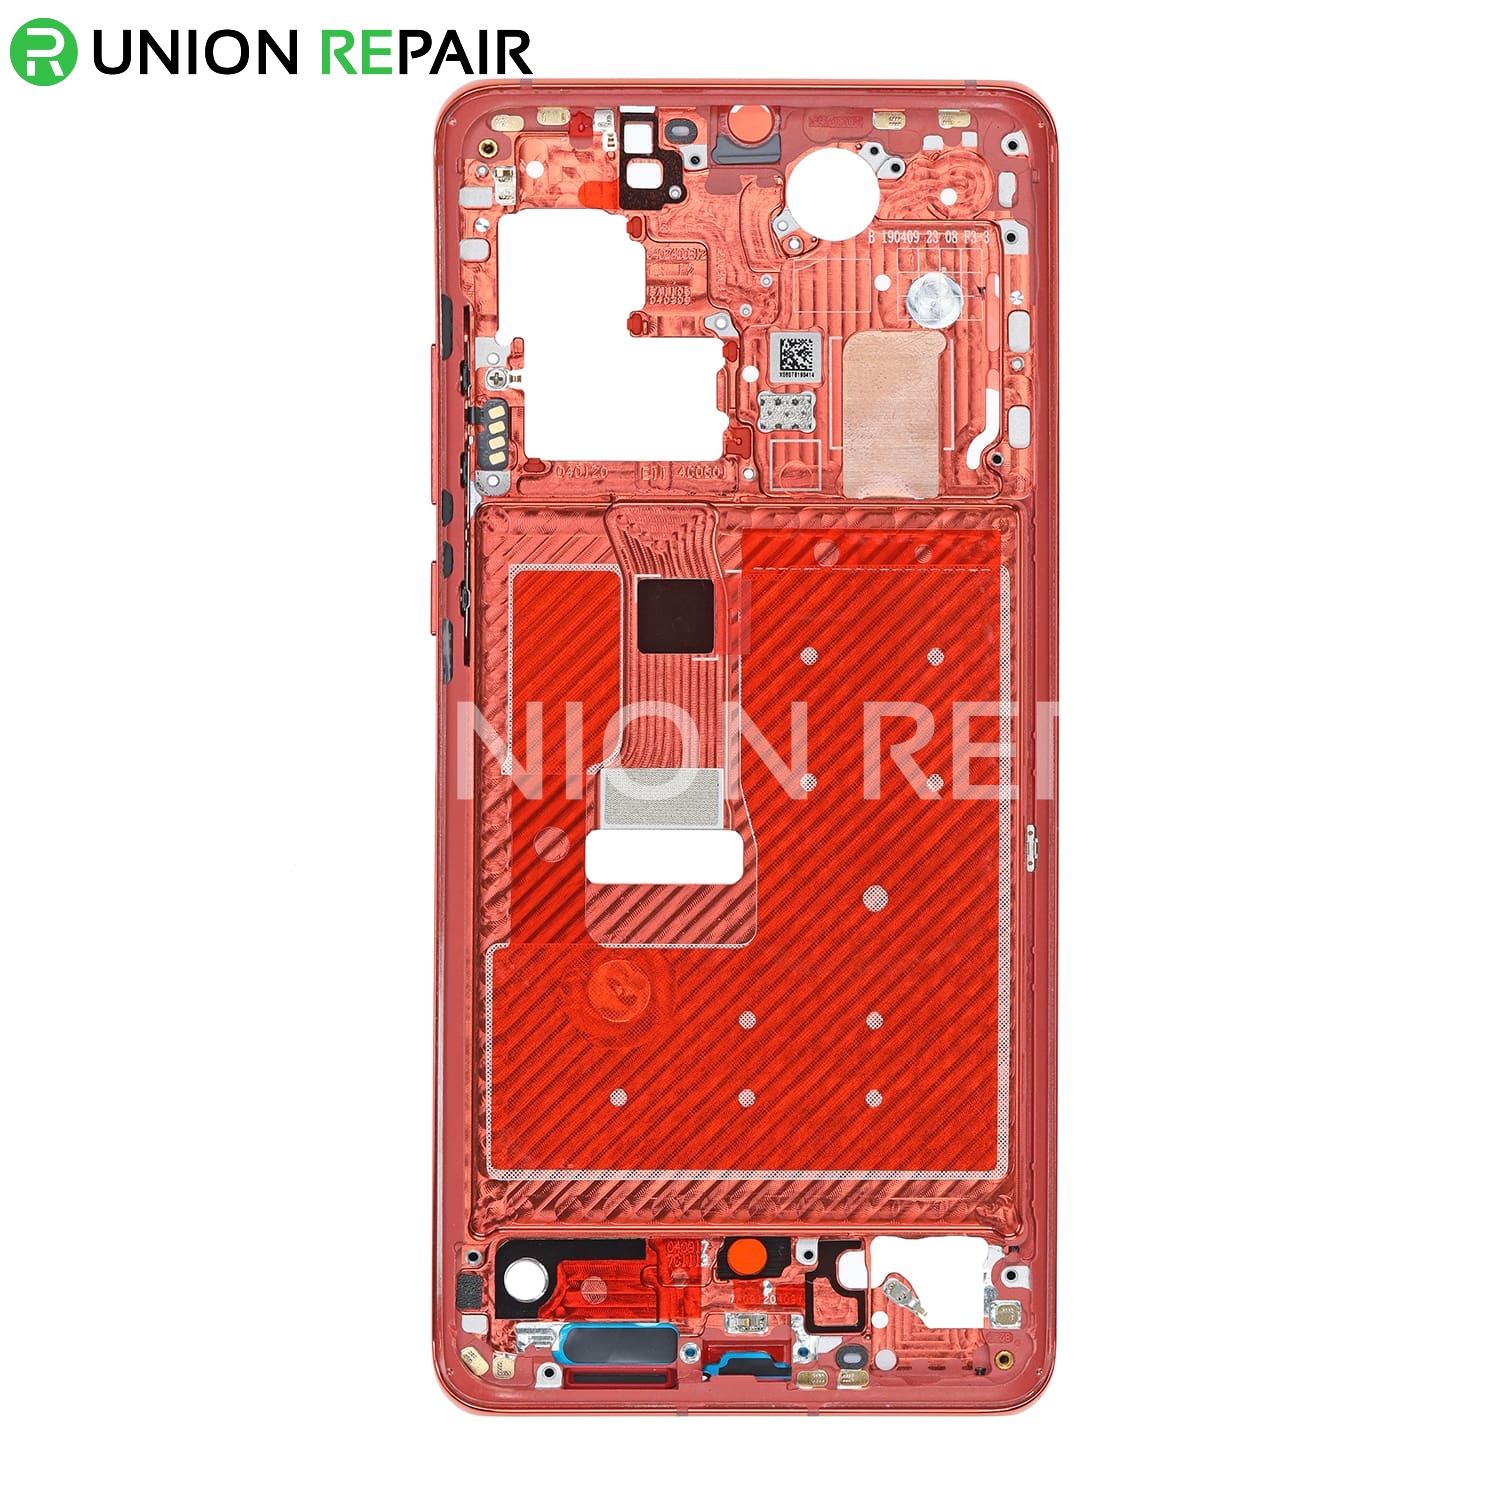 Replacement for Huawei P30 Pro Rear Housing - Amber Sunrise